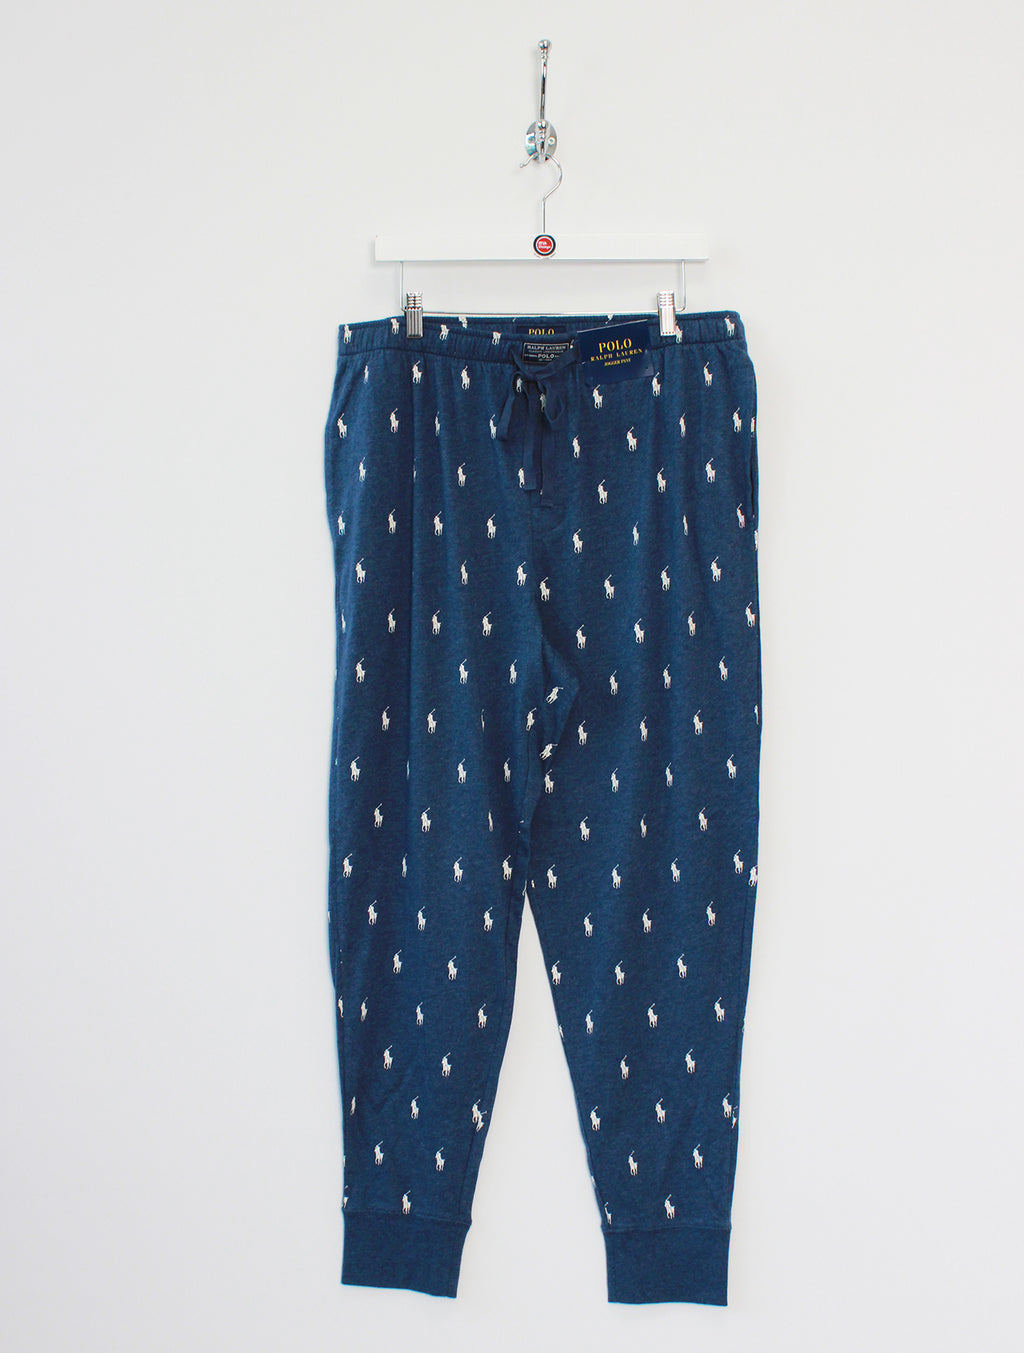 BNWT Ralph Lauren Lounge Pants (XL)